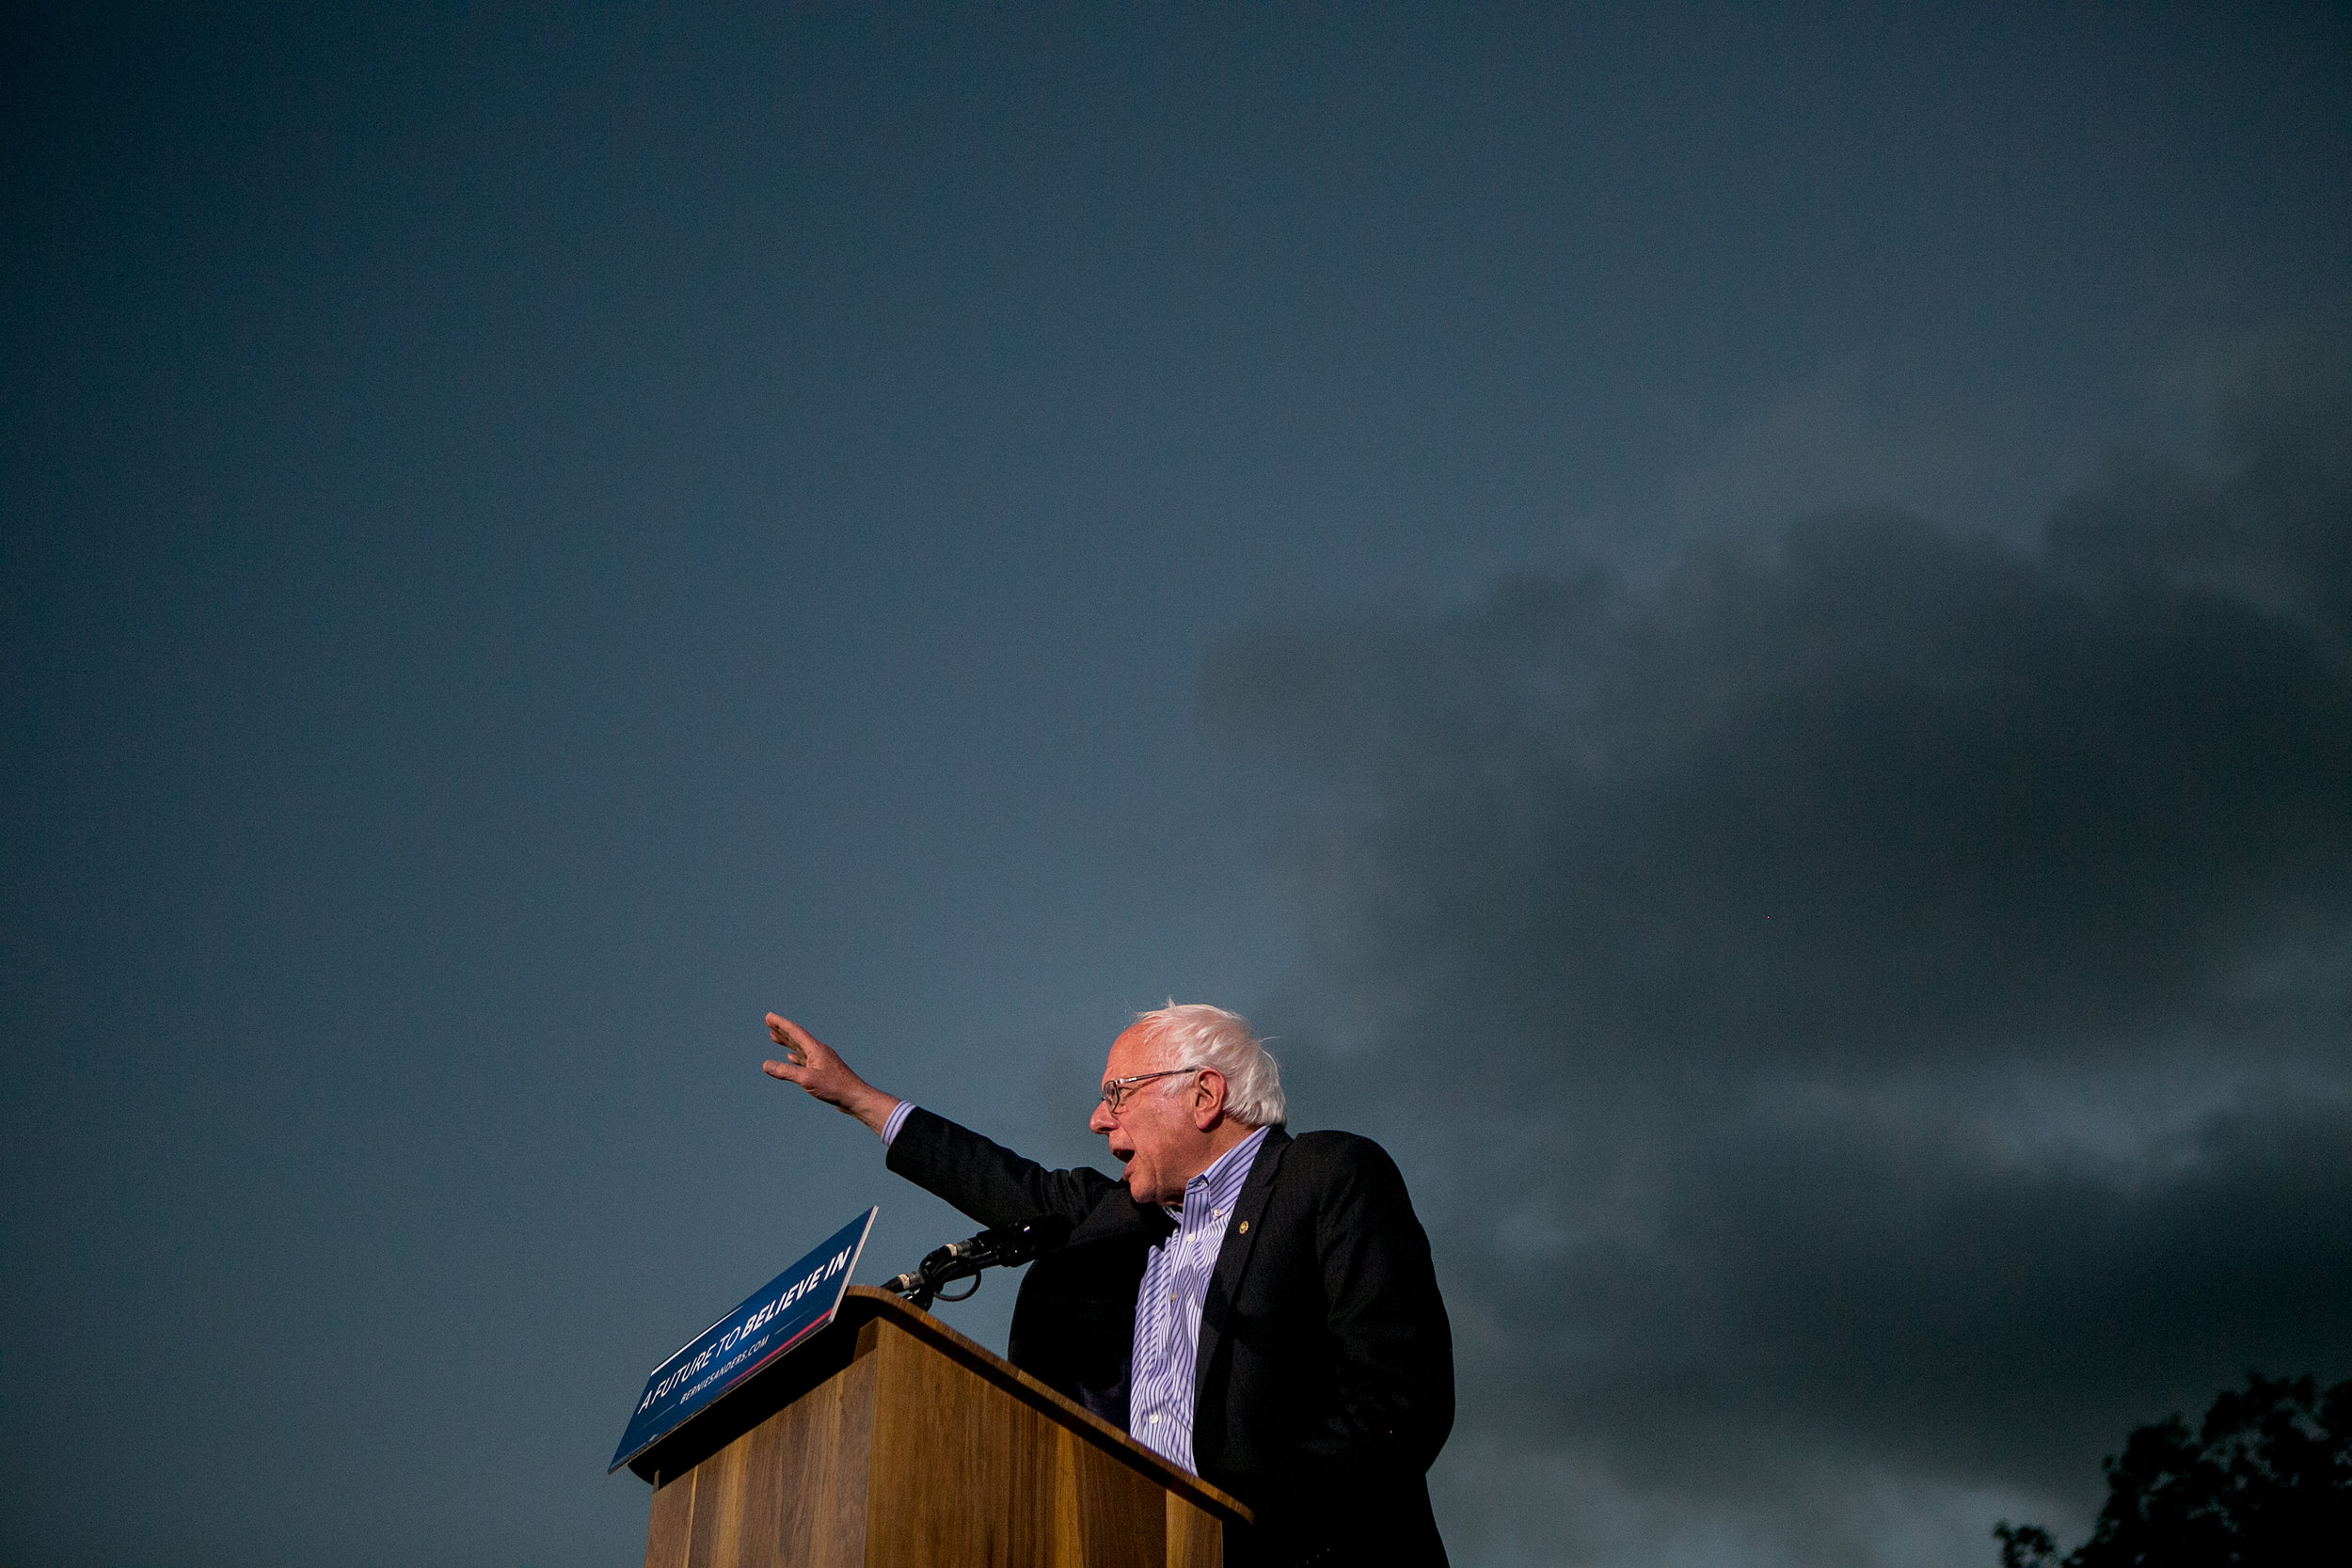 Later that evening, he spoke to a crowd in Kimball Park in National City.